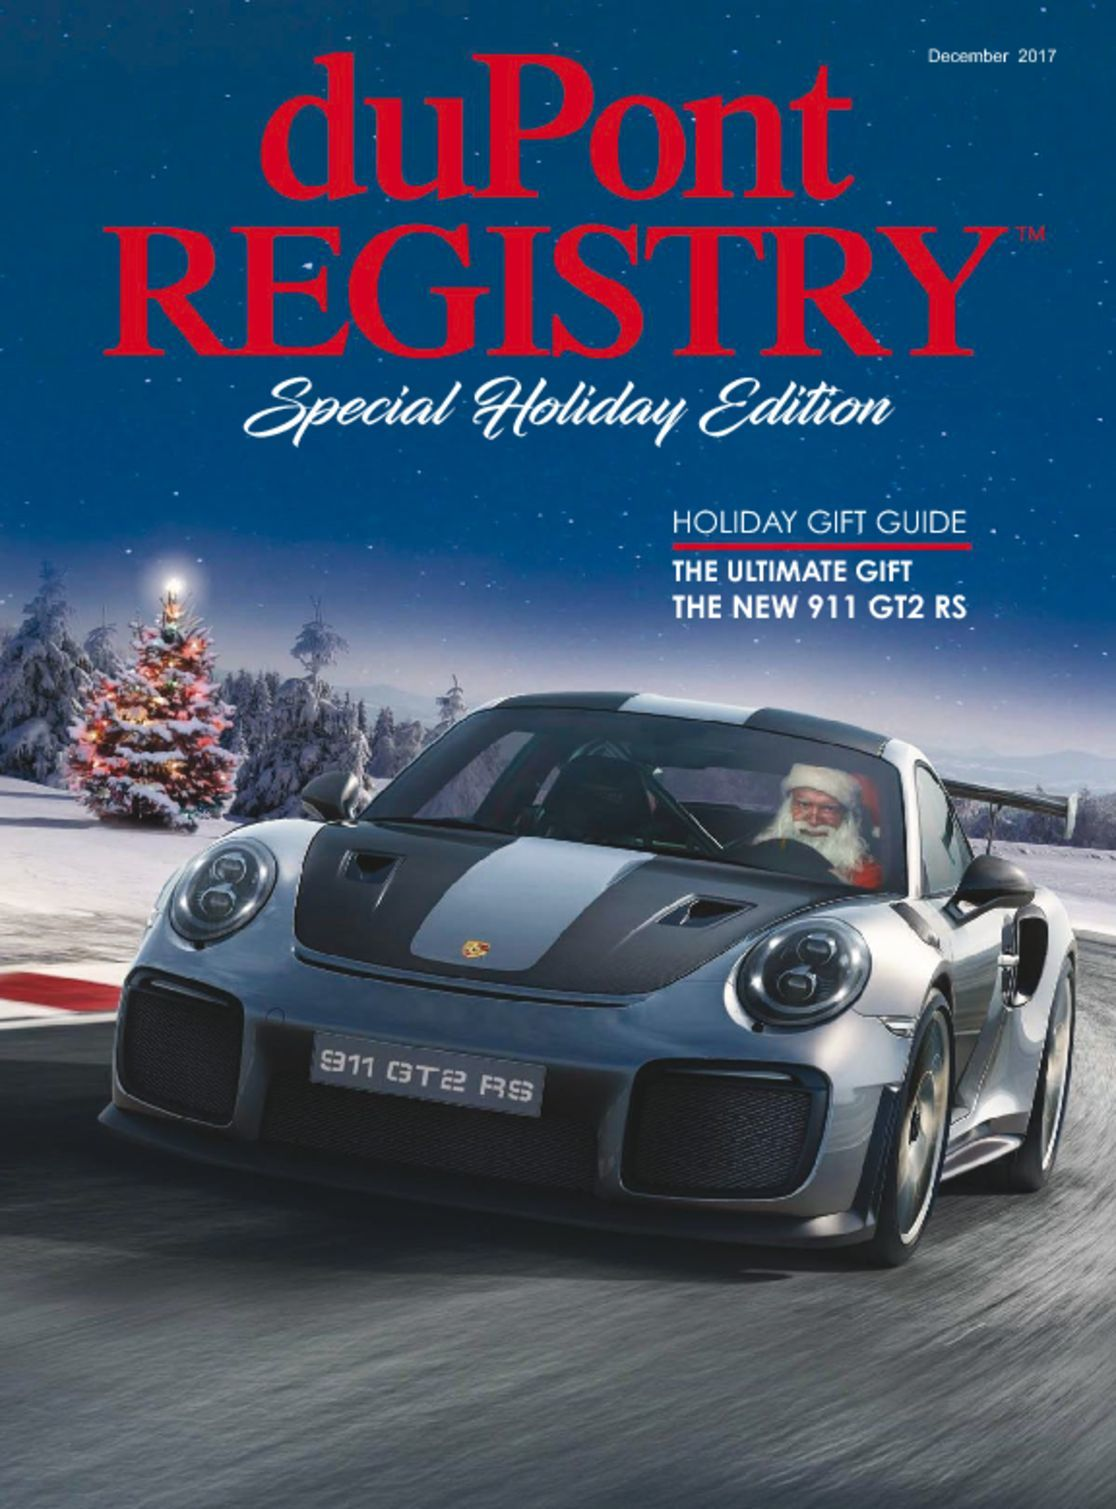 Dupont Registry Magazine Subscription